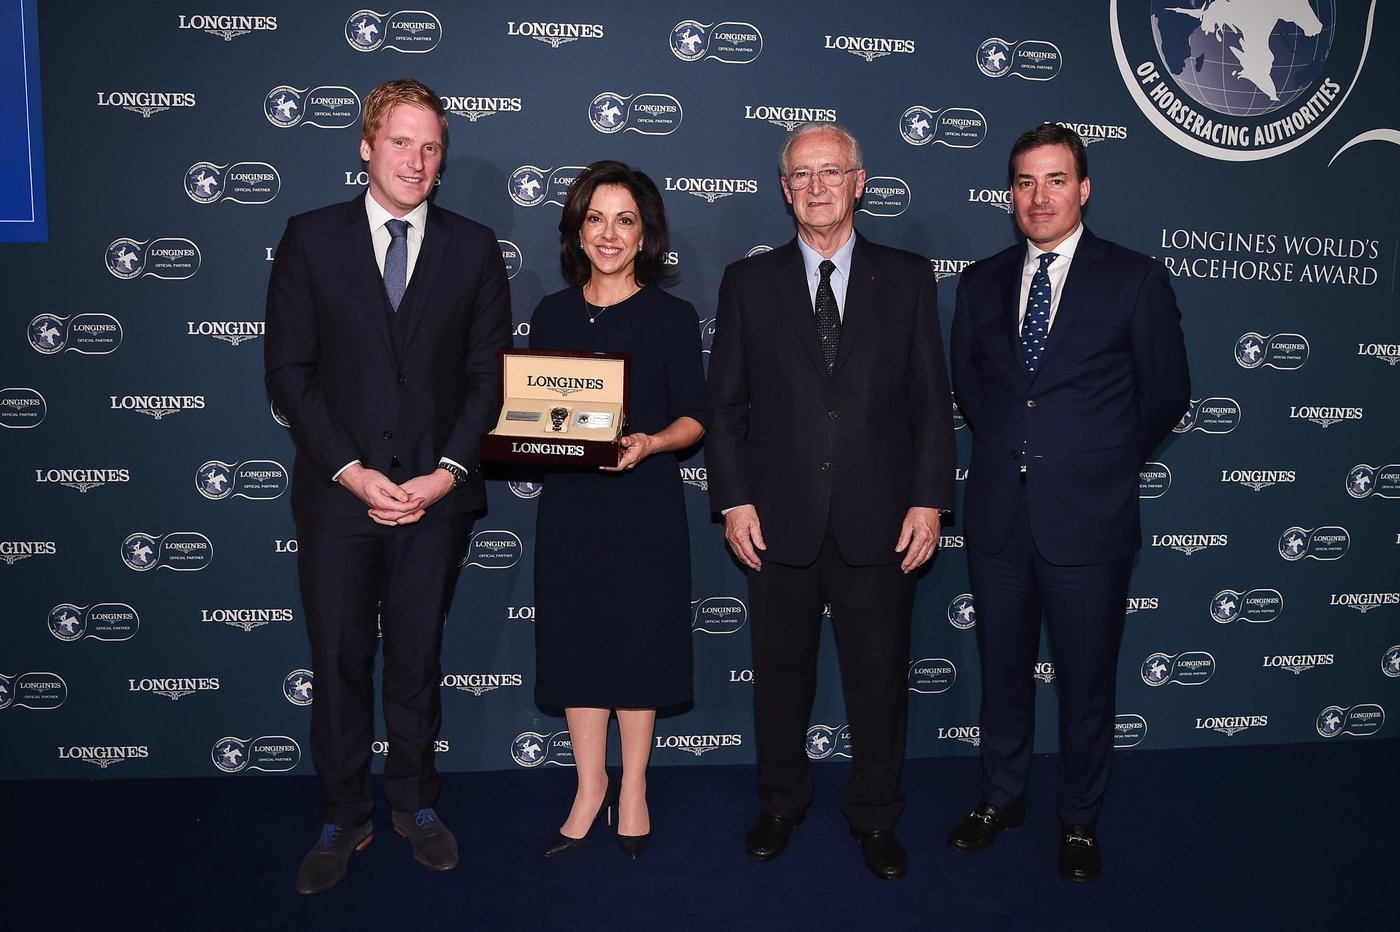 Longines Flat Racing Event: Winx and Cracksman named the 2018 Longines World's Best Racehorses, Qatar Prix de l'Arc de Triomphe crowned Longines World's Best Horse Race for the third time 1